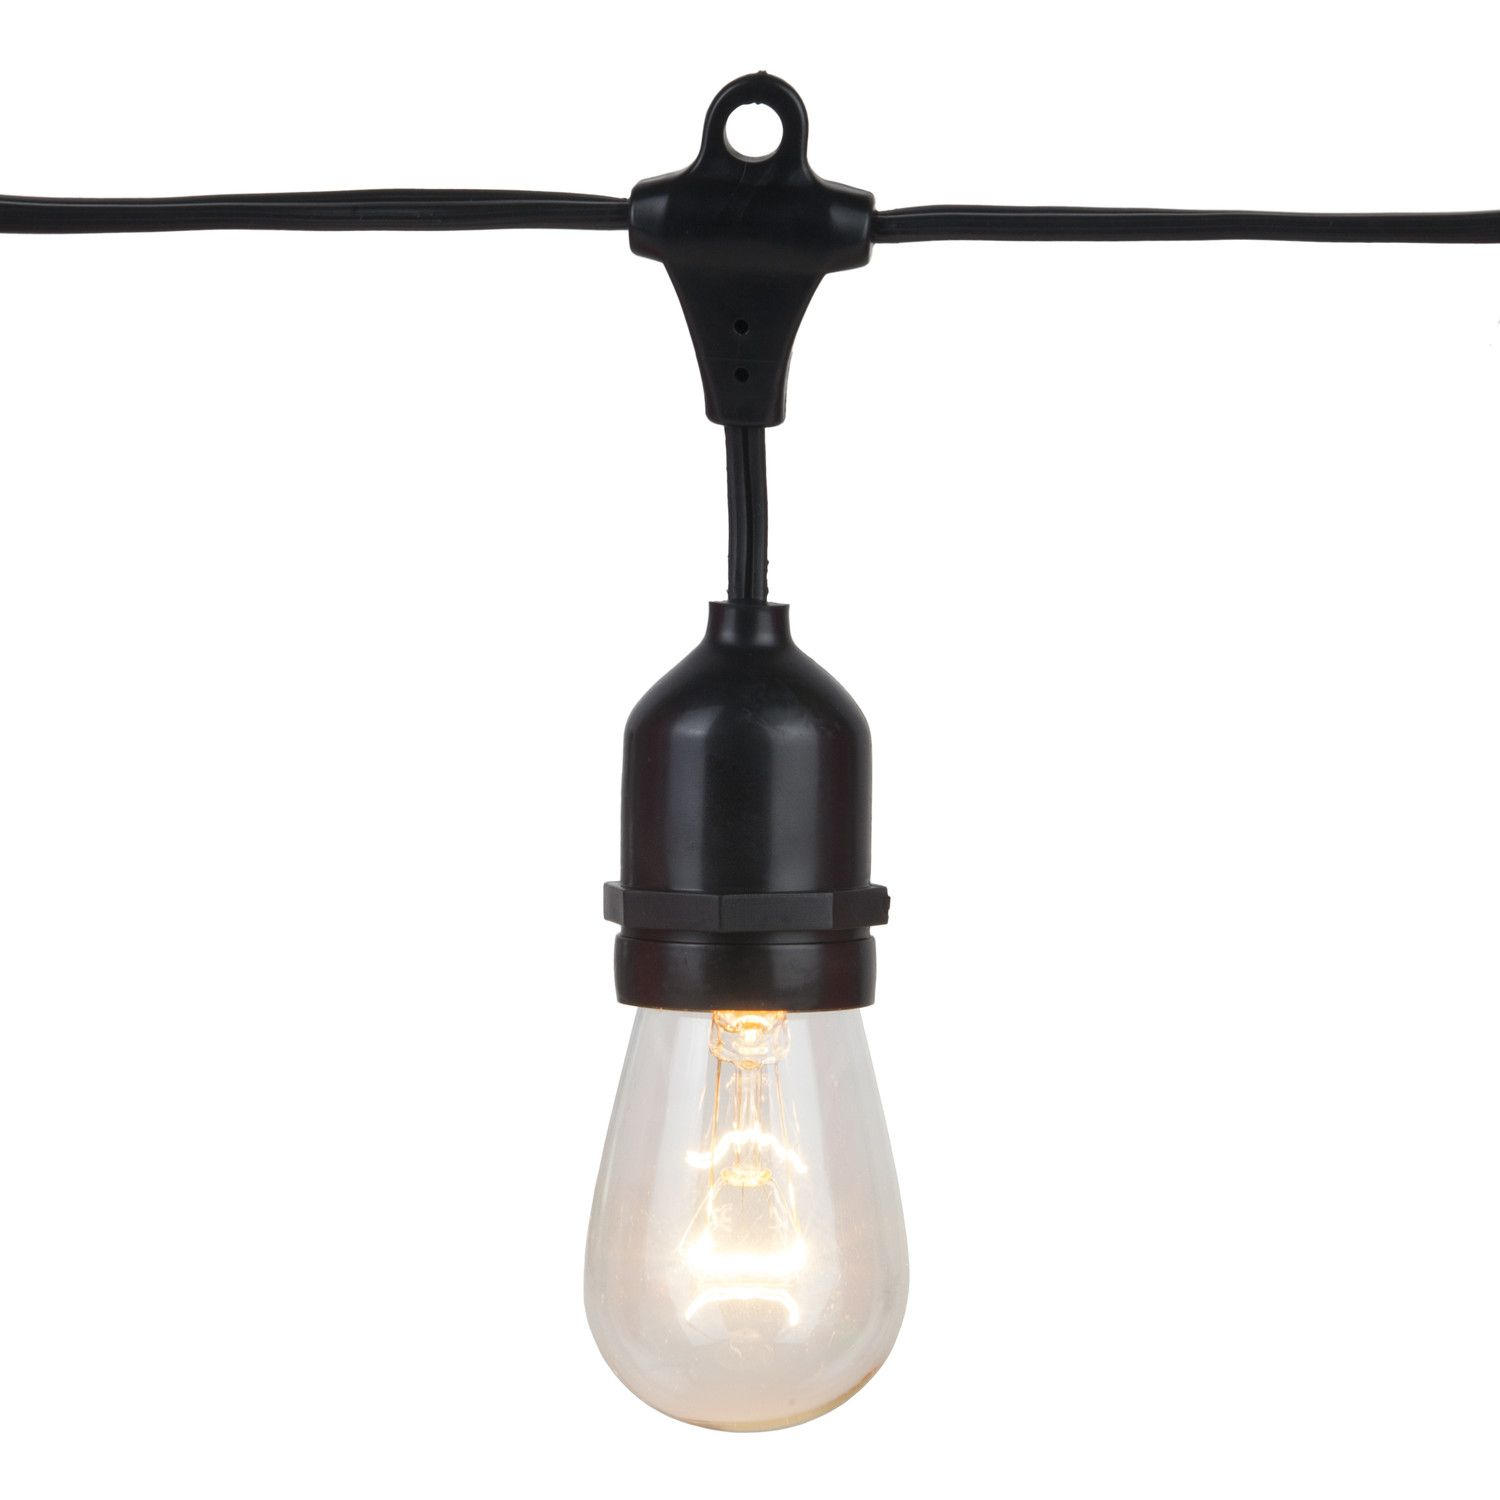 commercial patio lights. 108\u0027 Commercial Grade Patio String Lights, 50 E26 - Medium Sockets, Black Wire Lights P